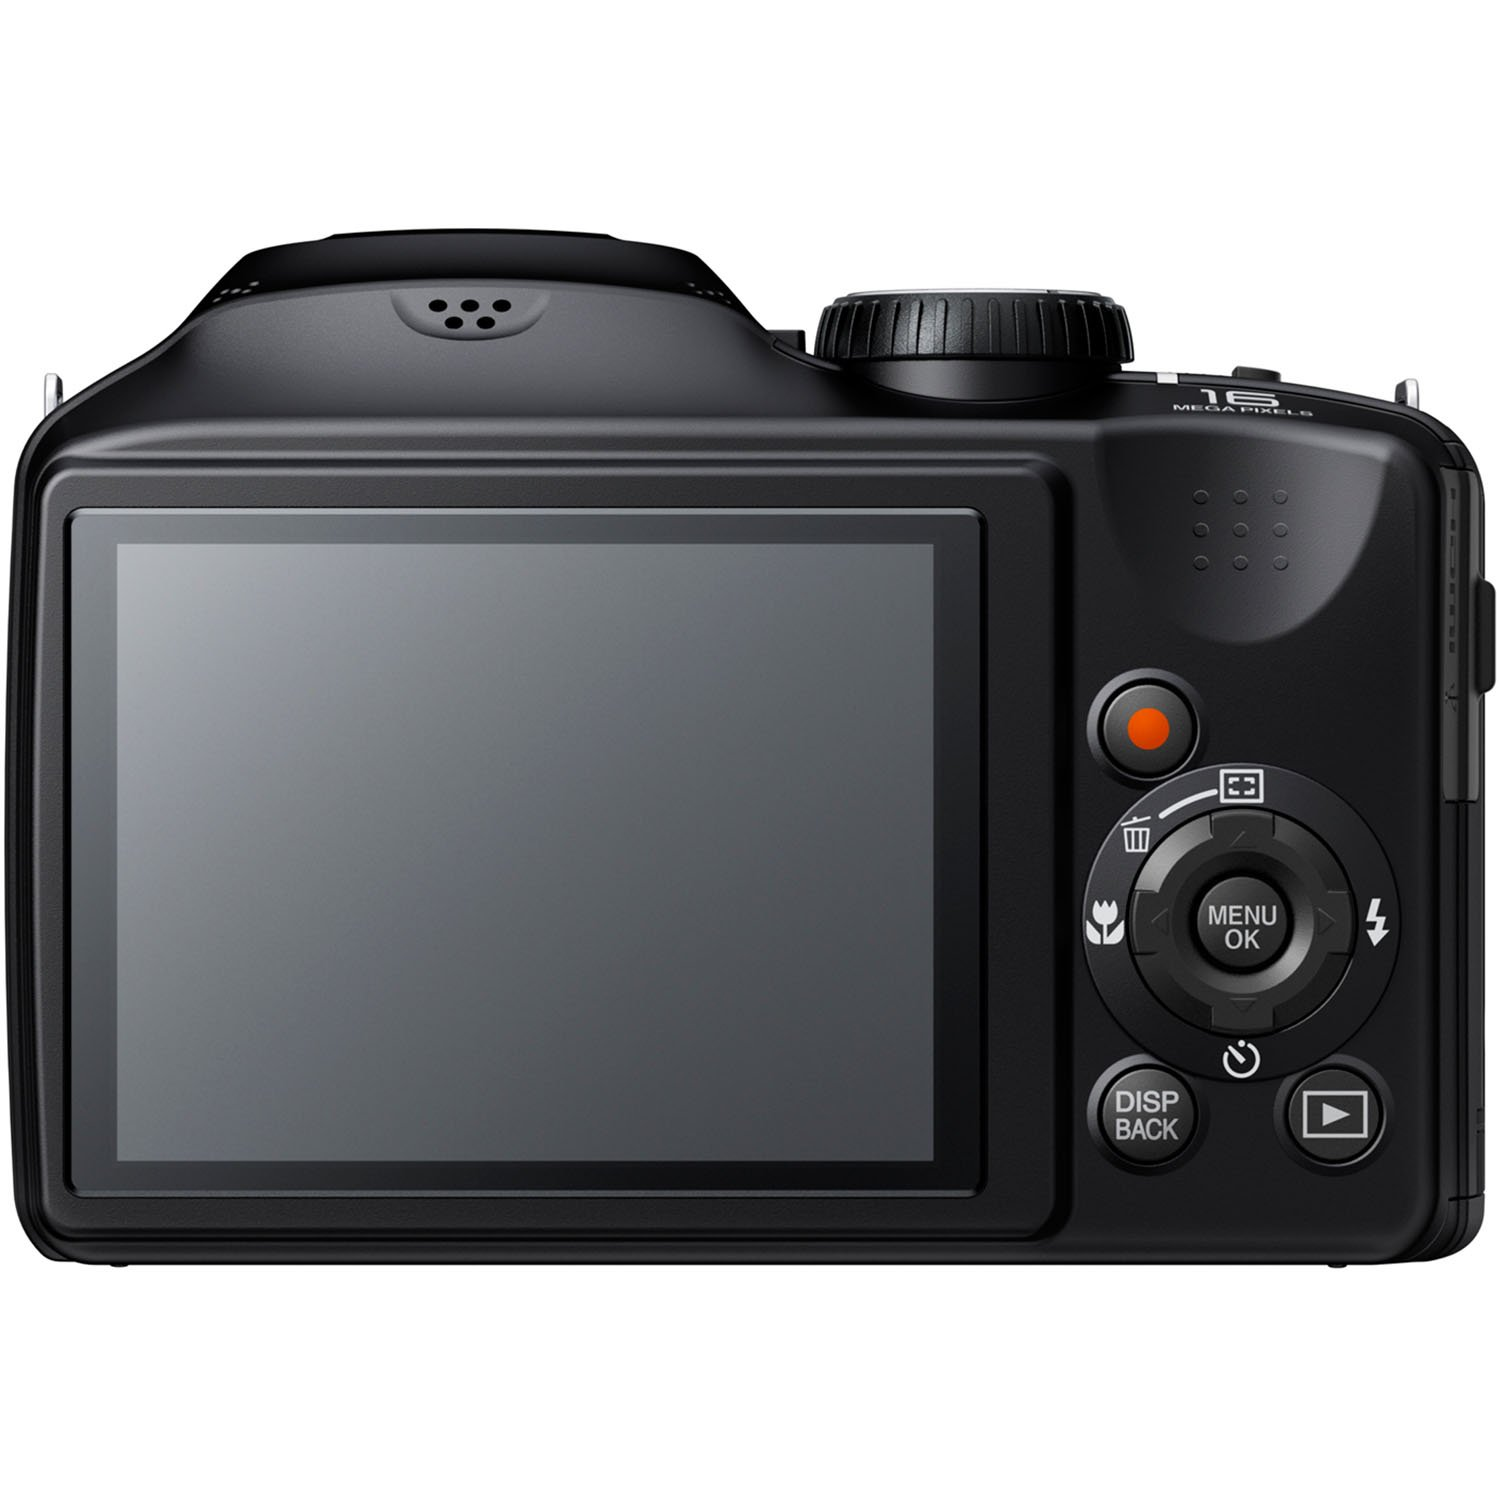 Fujifilm FinePix S4800 Digital Camera Price In Pakistan